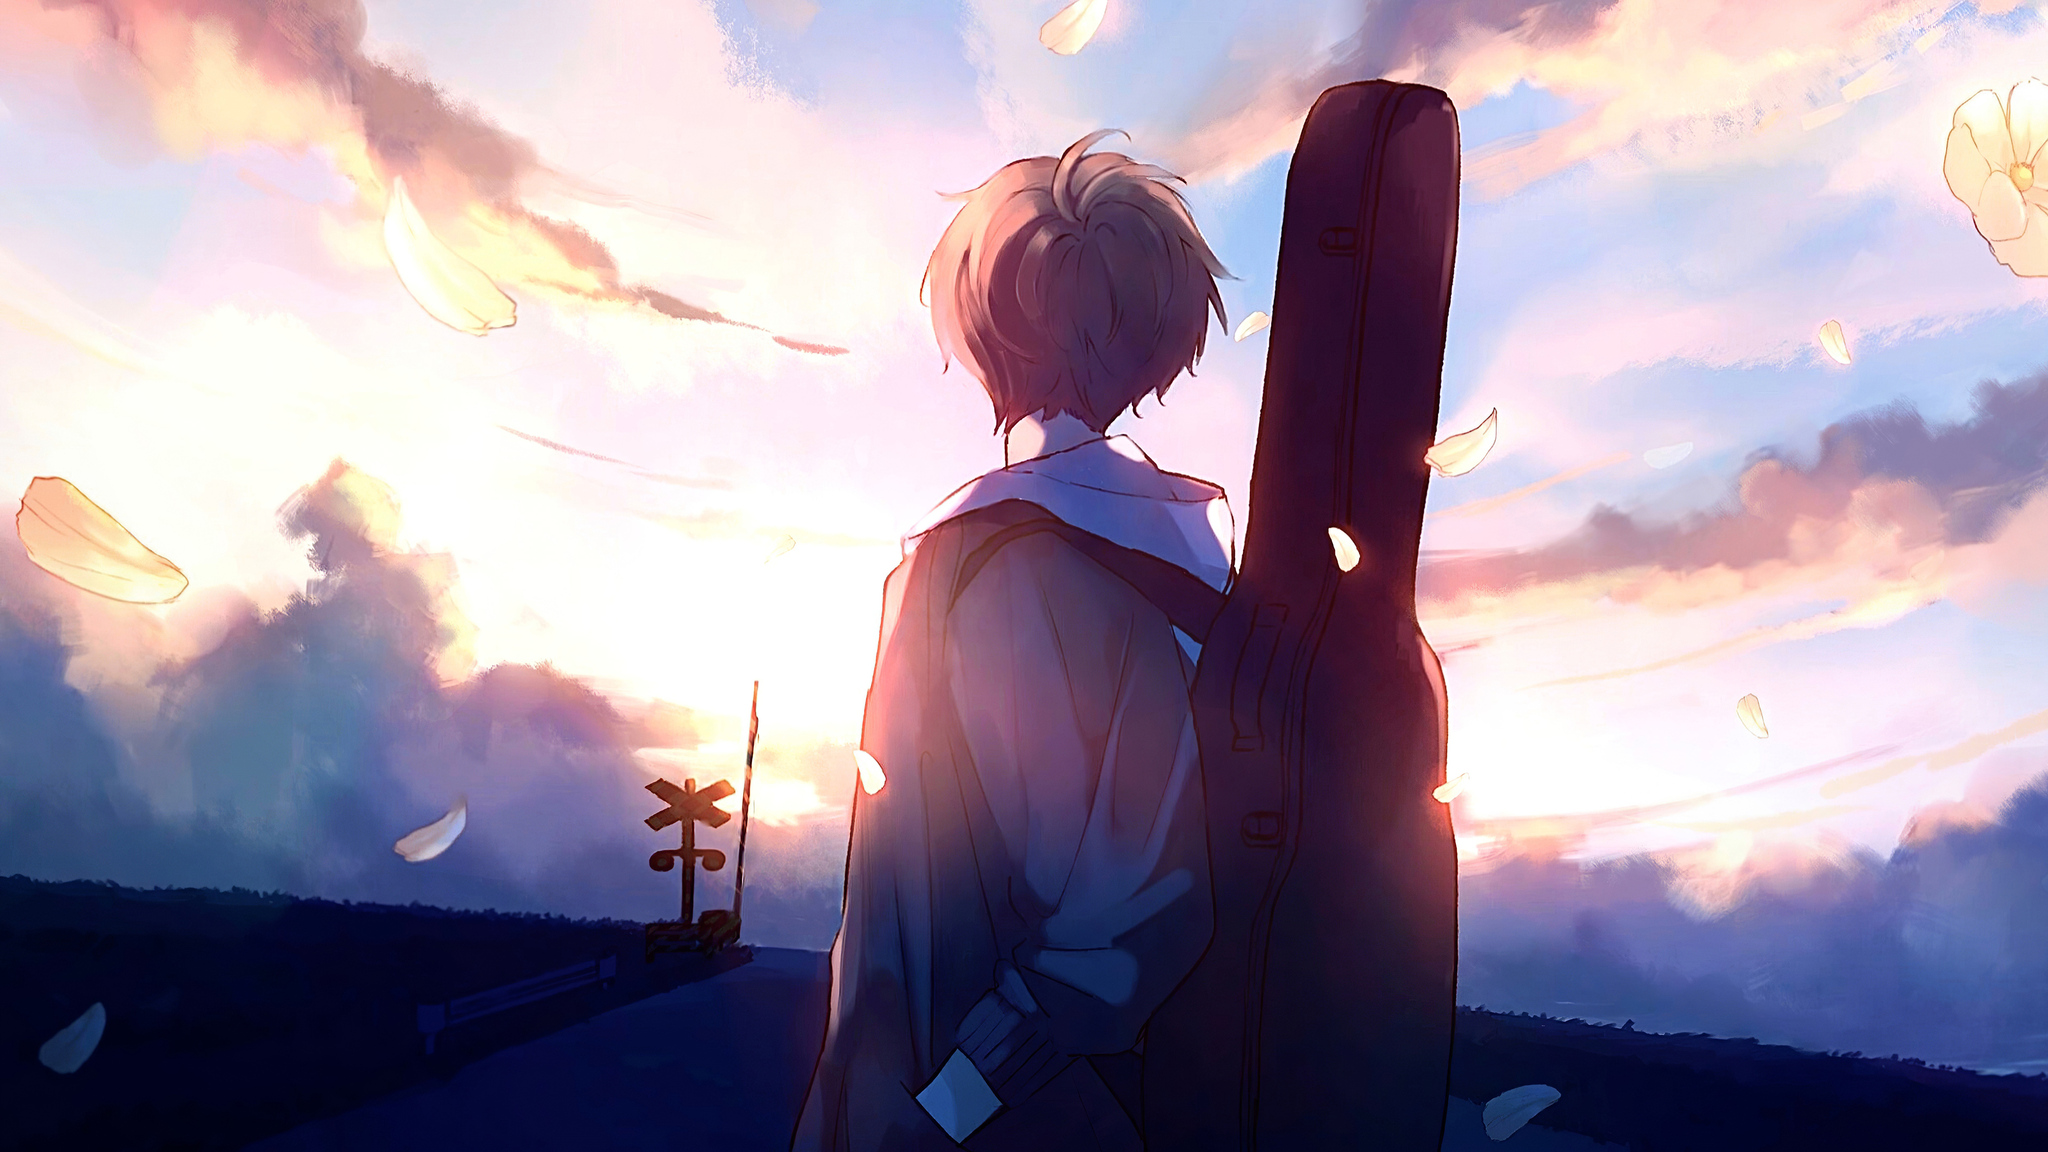 2048x1152 Anime Boy Guitar Painting 2048x1152 Resolution Hd 4k Wallpapers Images Backgrounds Photos And Pictures